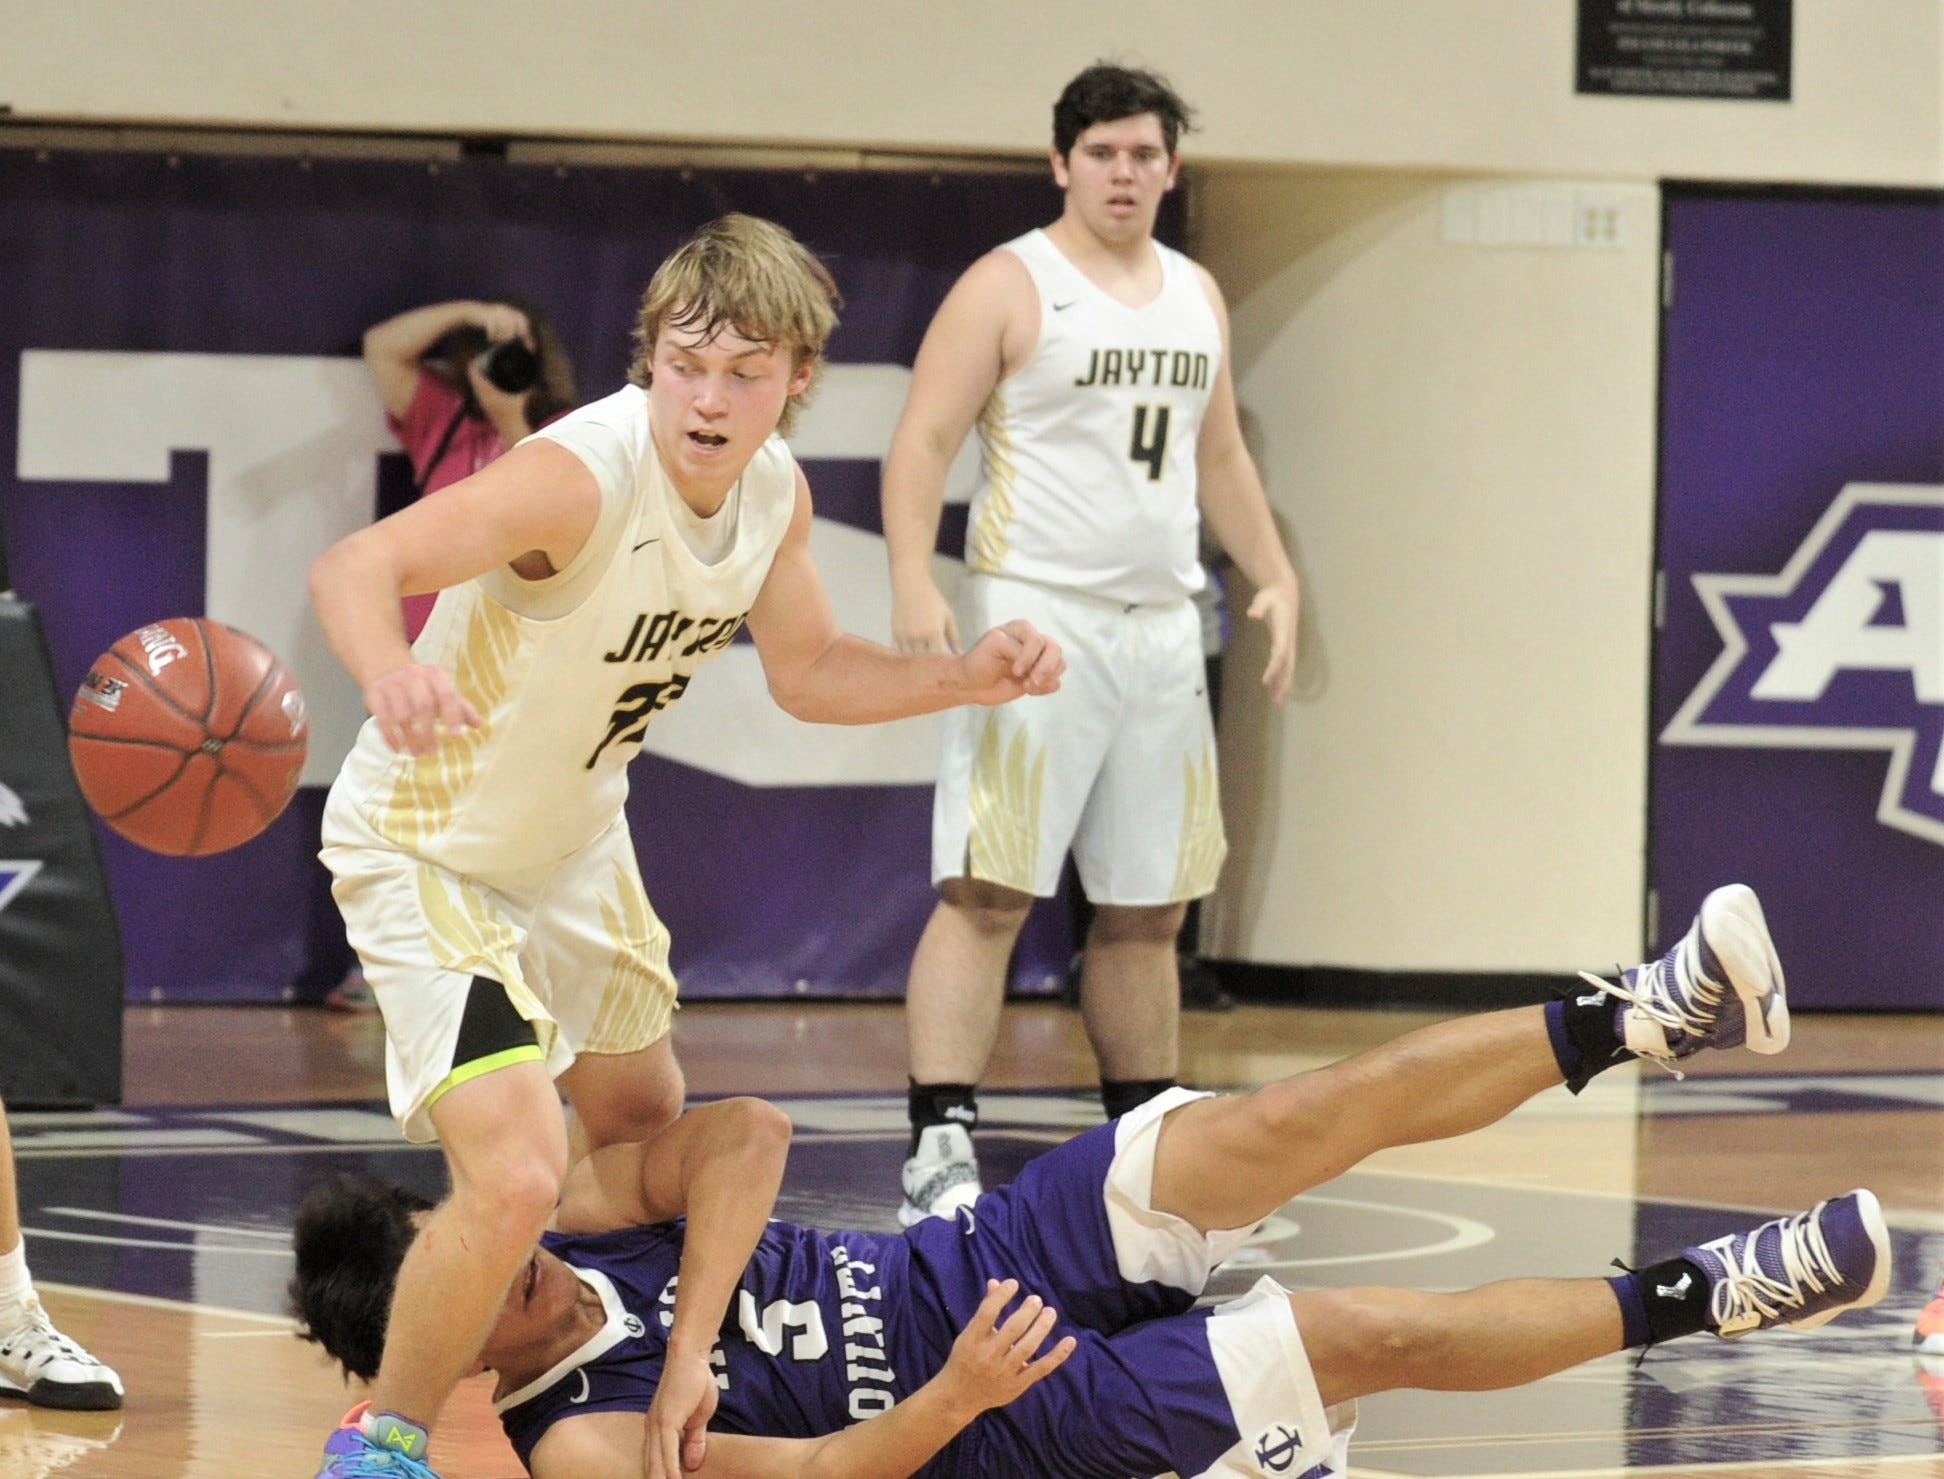 Jayton's Tye Scogin eyes the ball after Irion County's Nathan Chacon falls down and loses the ball. Scogin was called for a foul on the play. The Jaybirds beat Irion County 47-32 in the Region II-1A championship game Saturday, March 2, 2019, at Abilene Christian's Moody Coliseum.